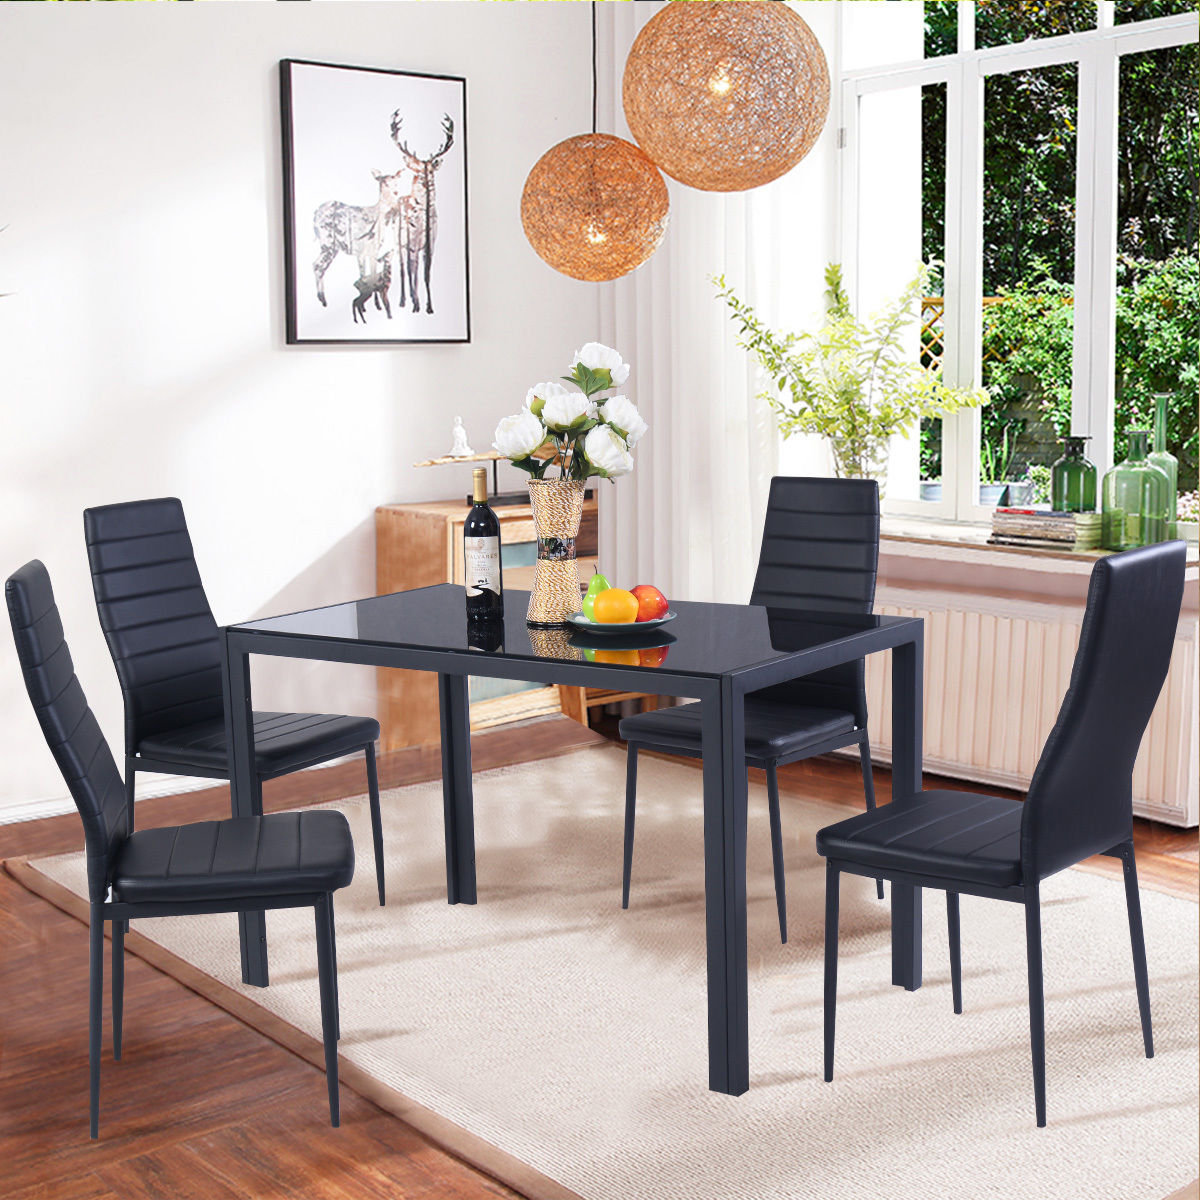 Kitchen Chair And Table Sets